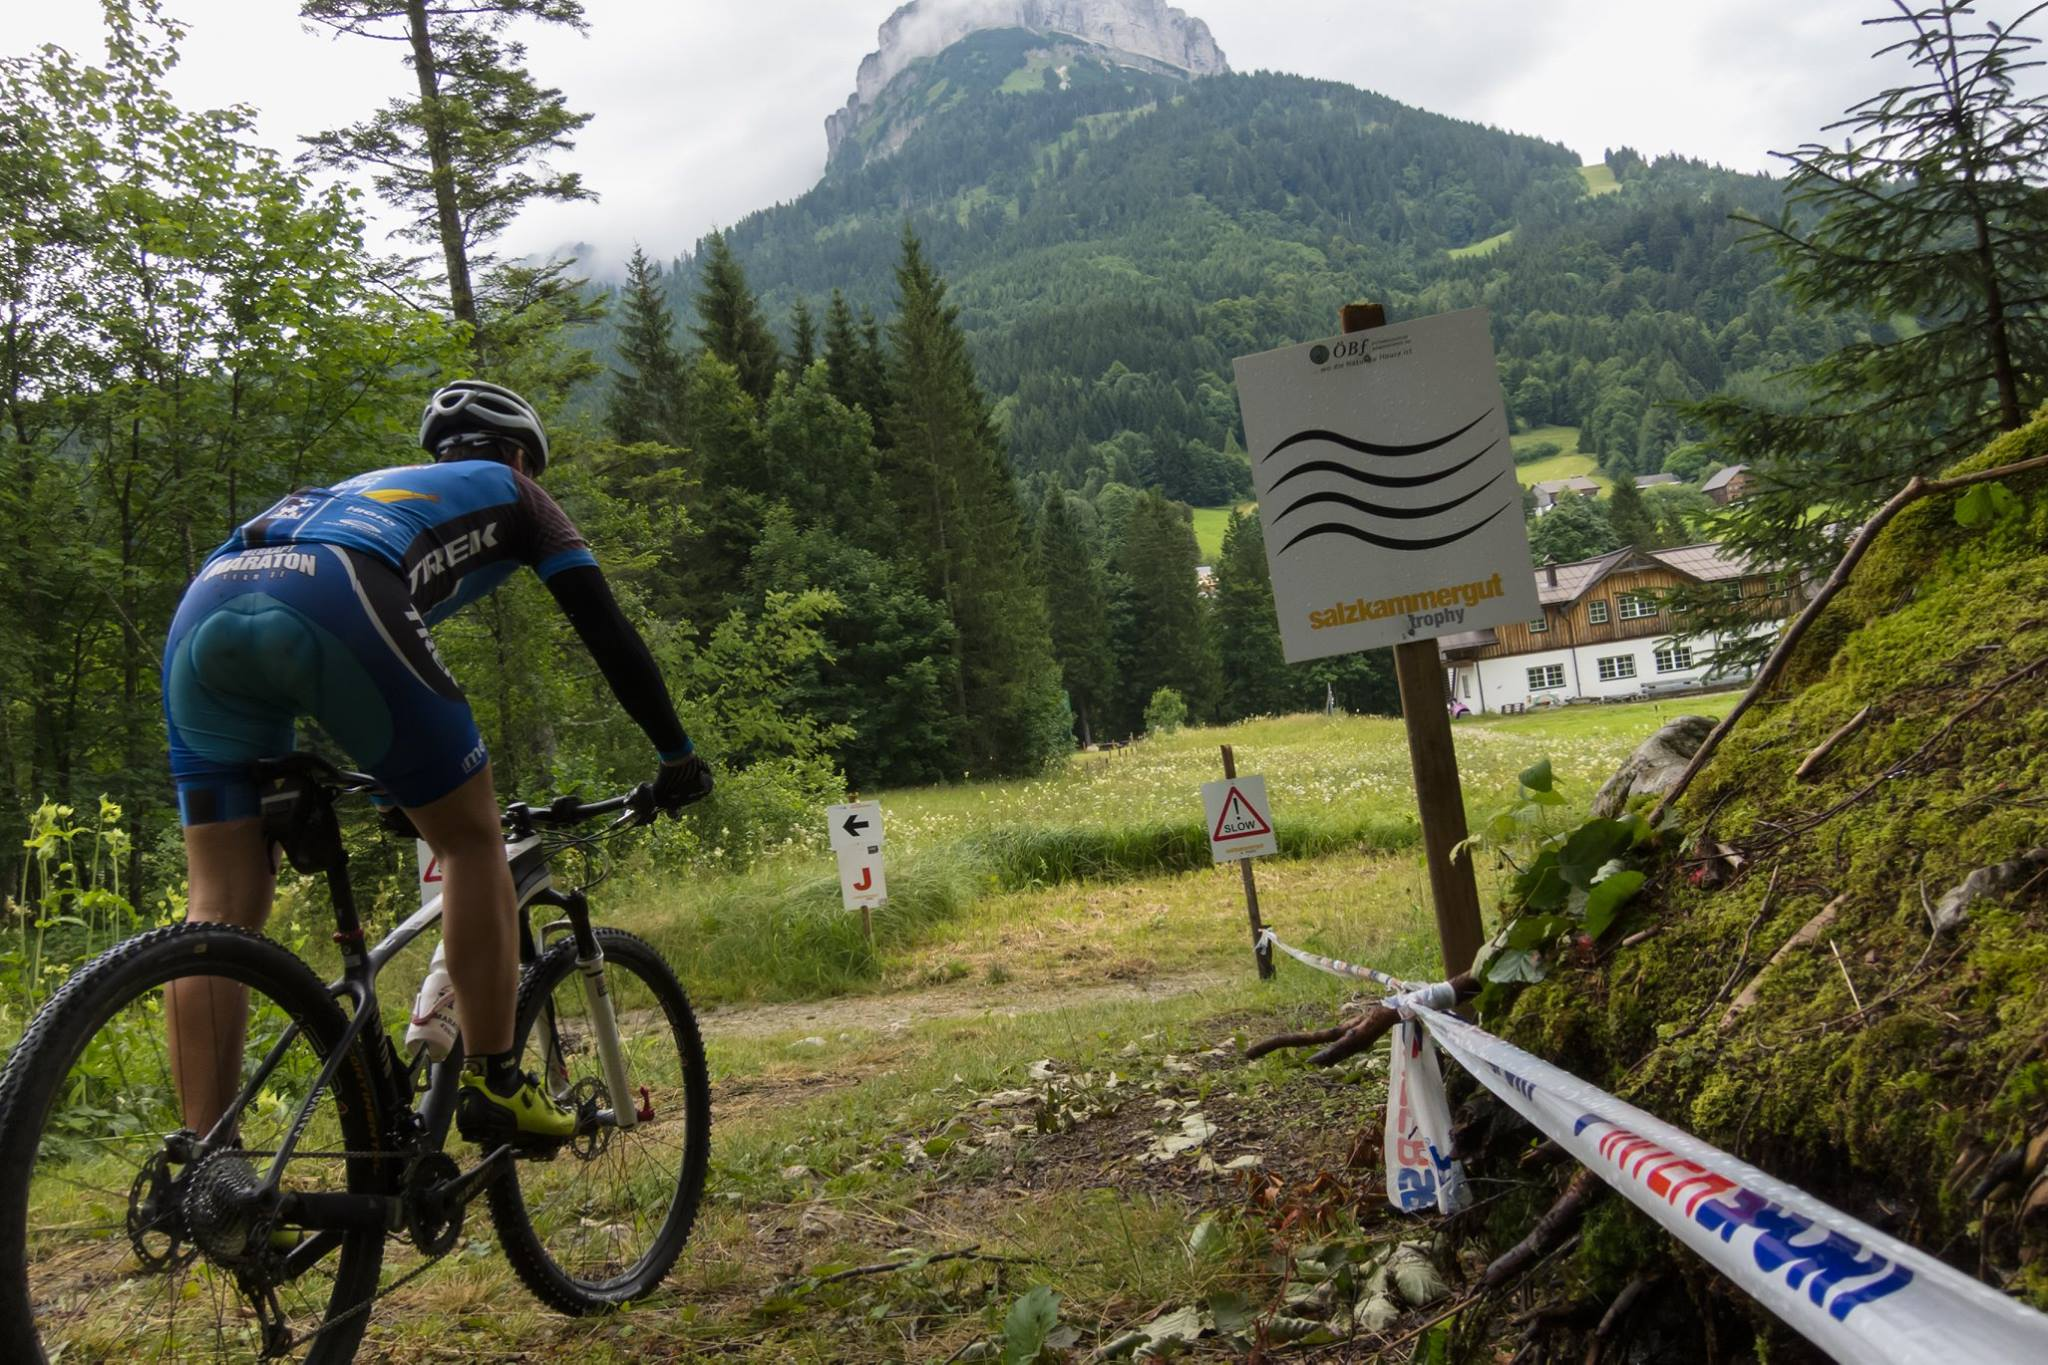 salzkammergut-trophy-mountain-bike-blog-6.jpg